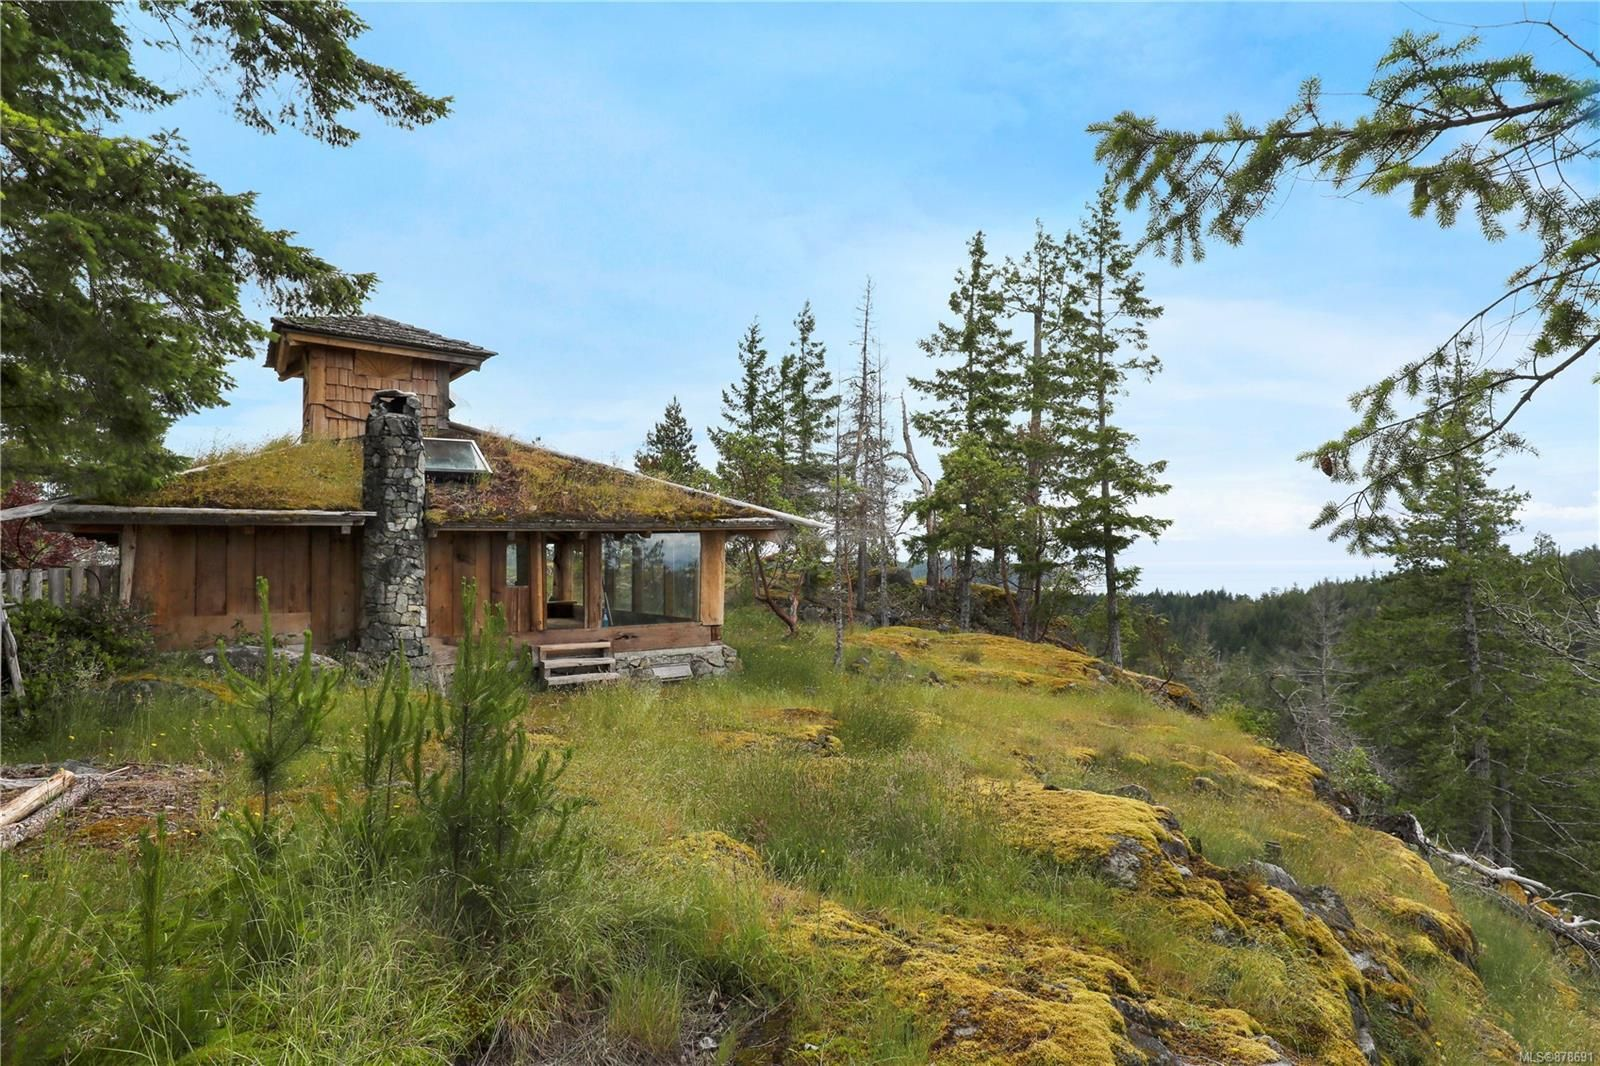 Photo 30: Photos: 979 Thunder Rd in : Isl Cortes Island House for sale (Islands)  : MLS®# 878691